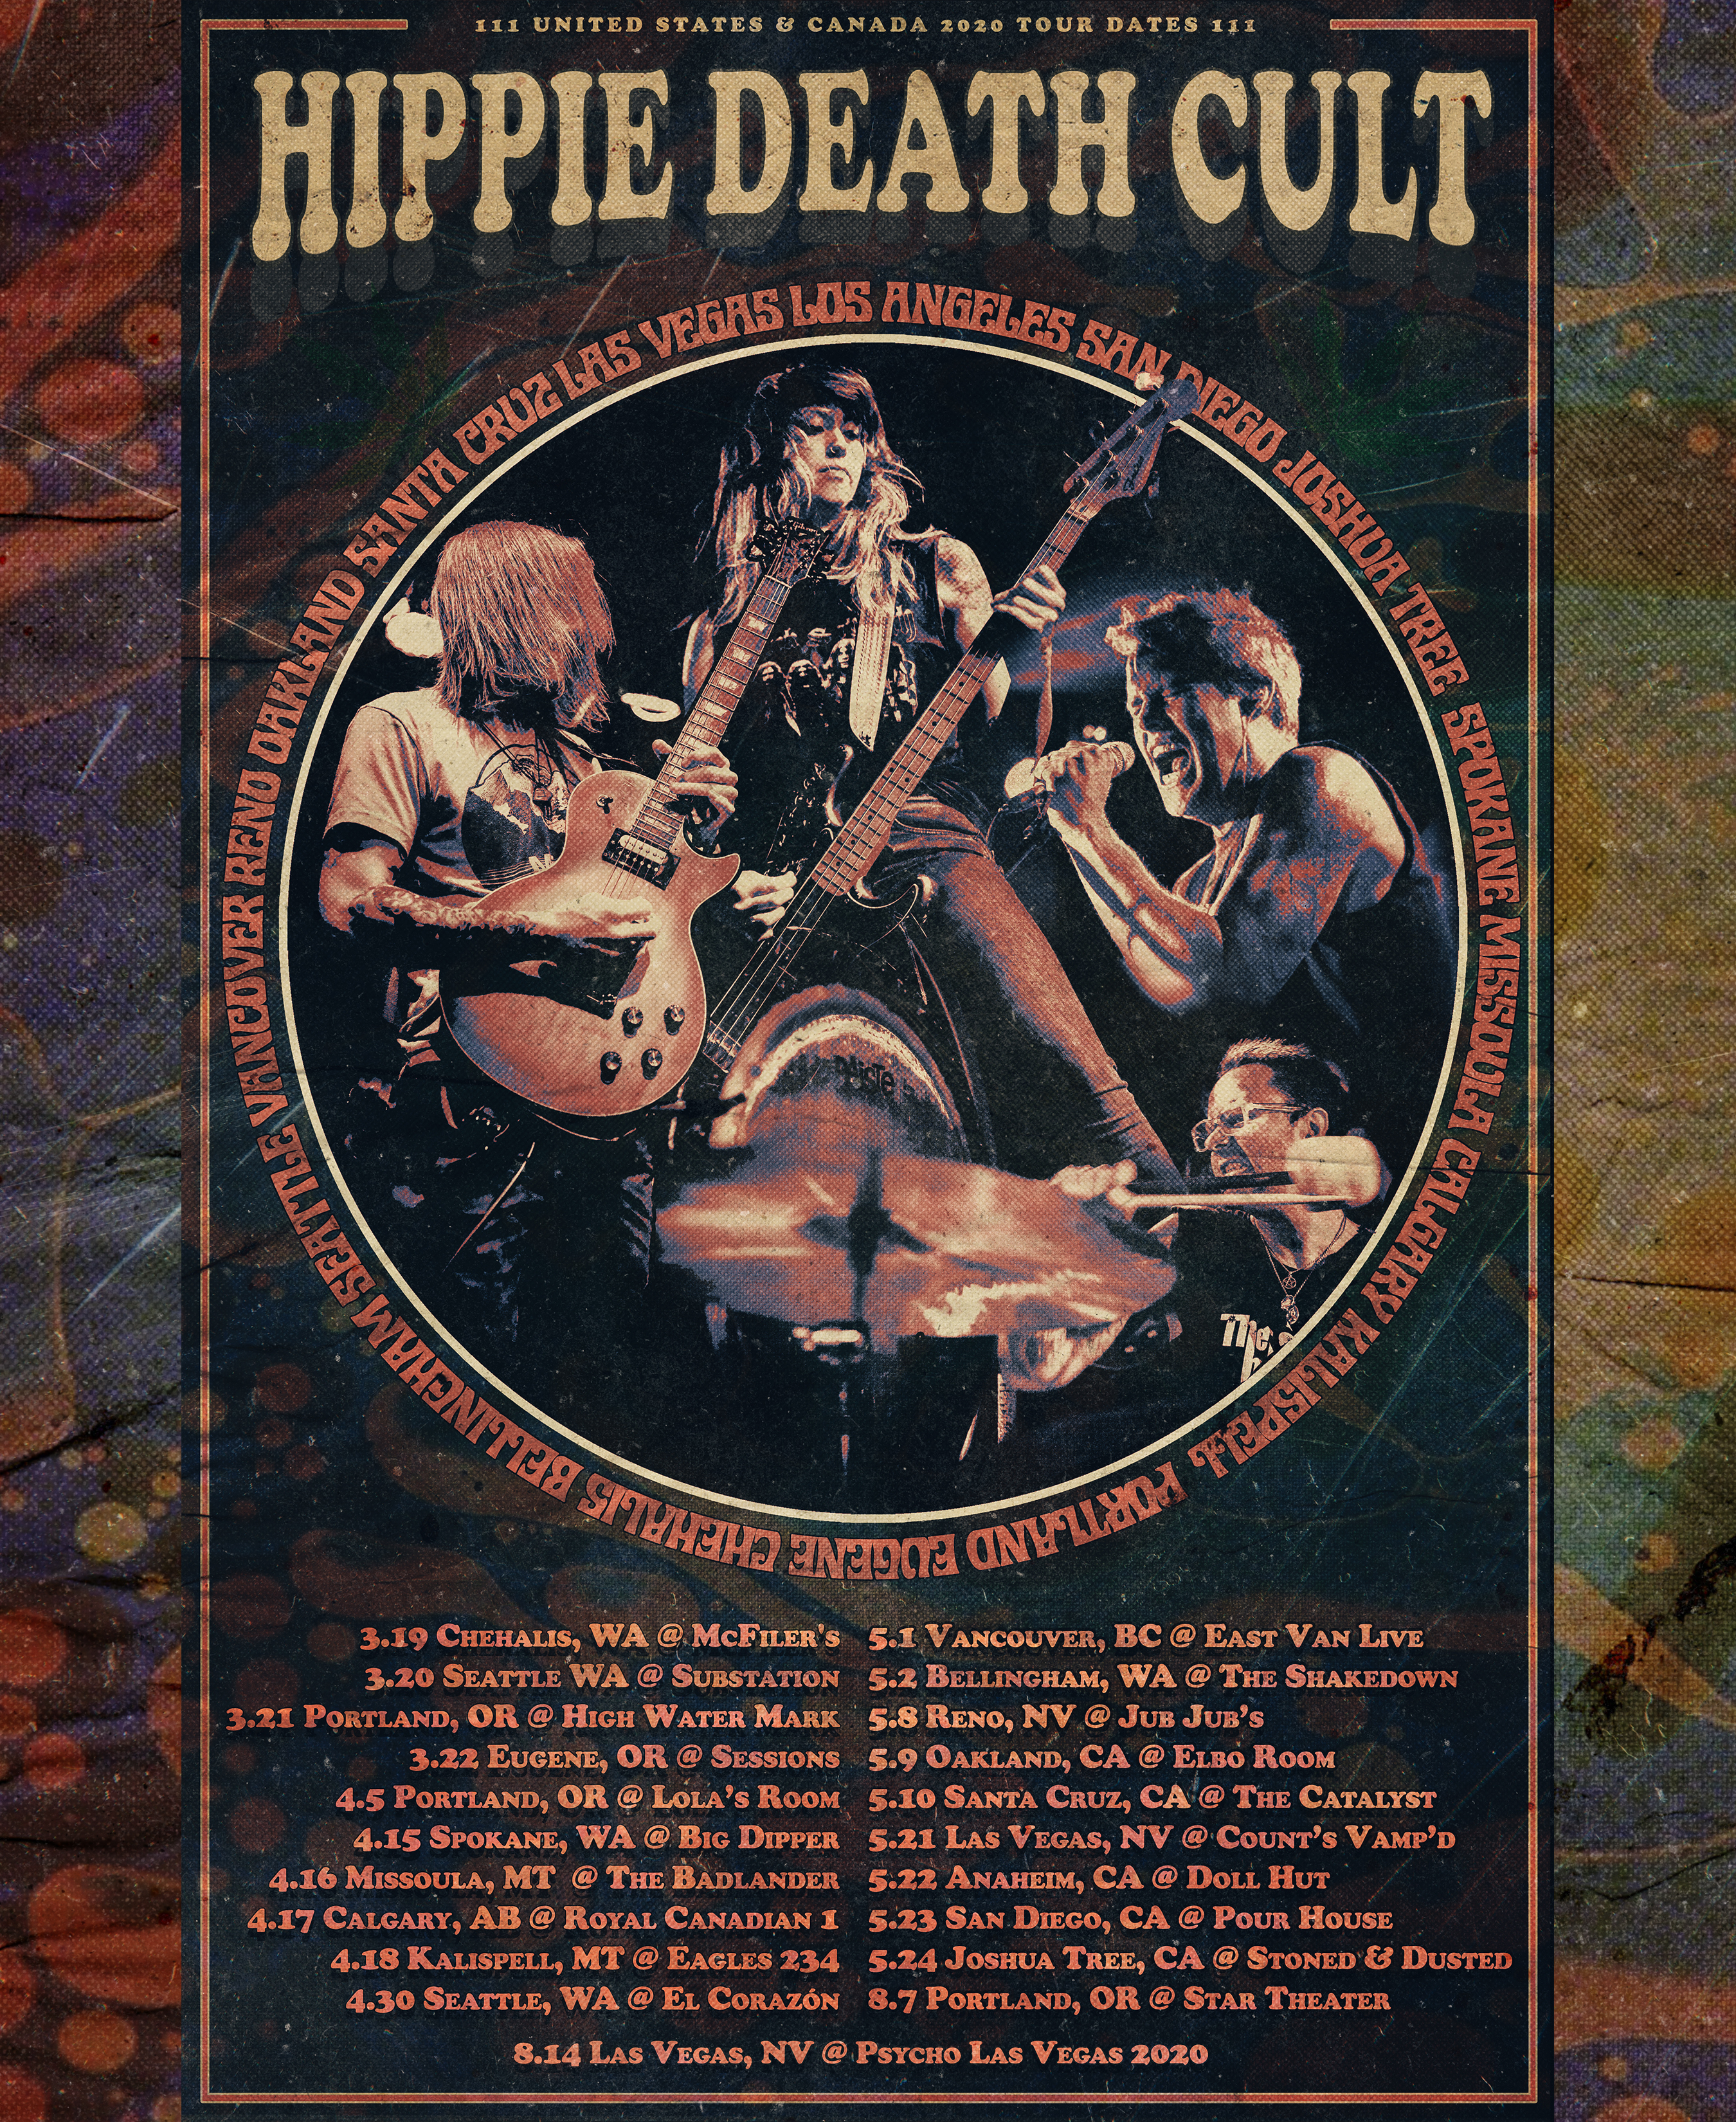 hippie death cult tour